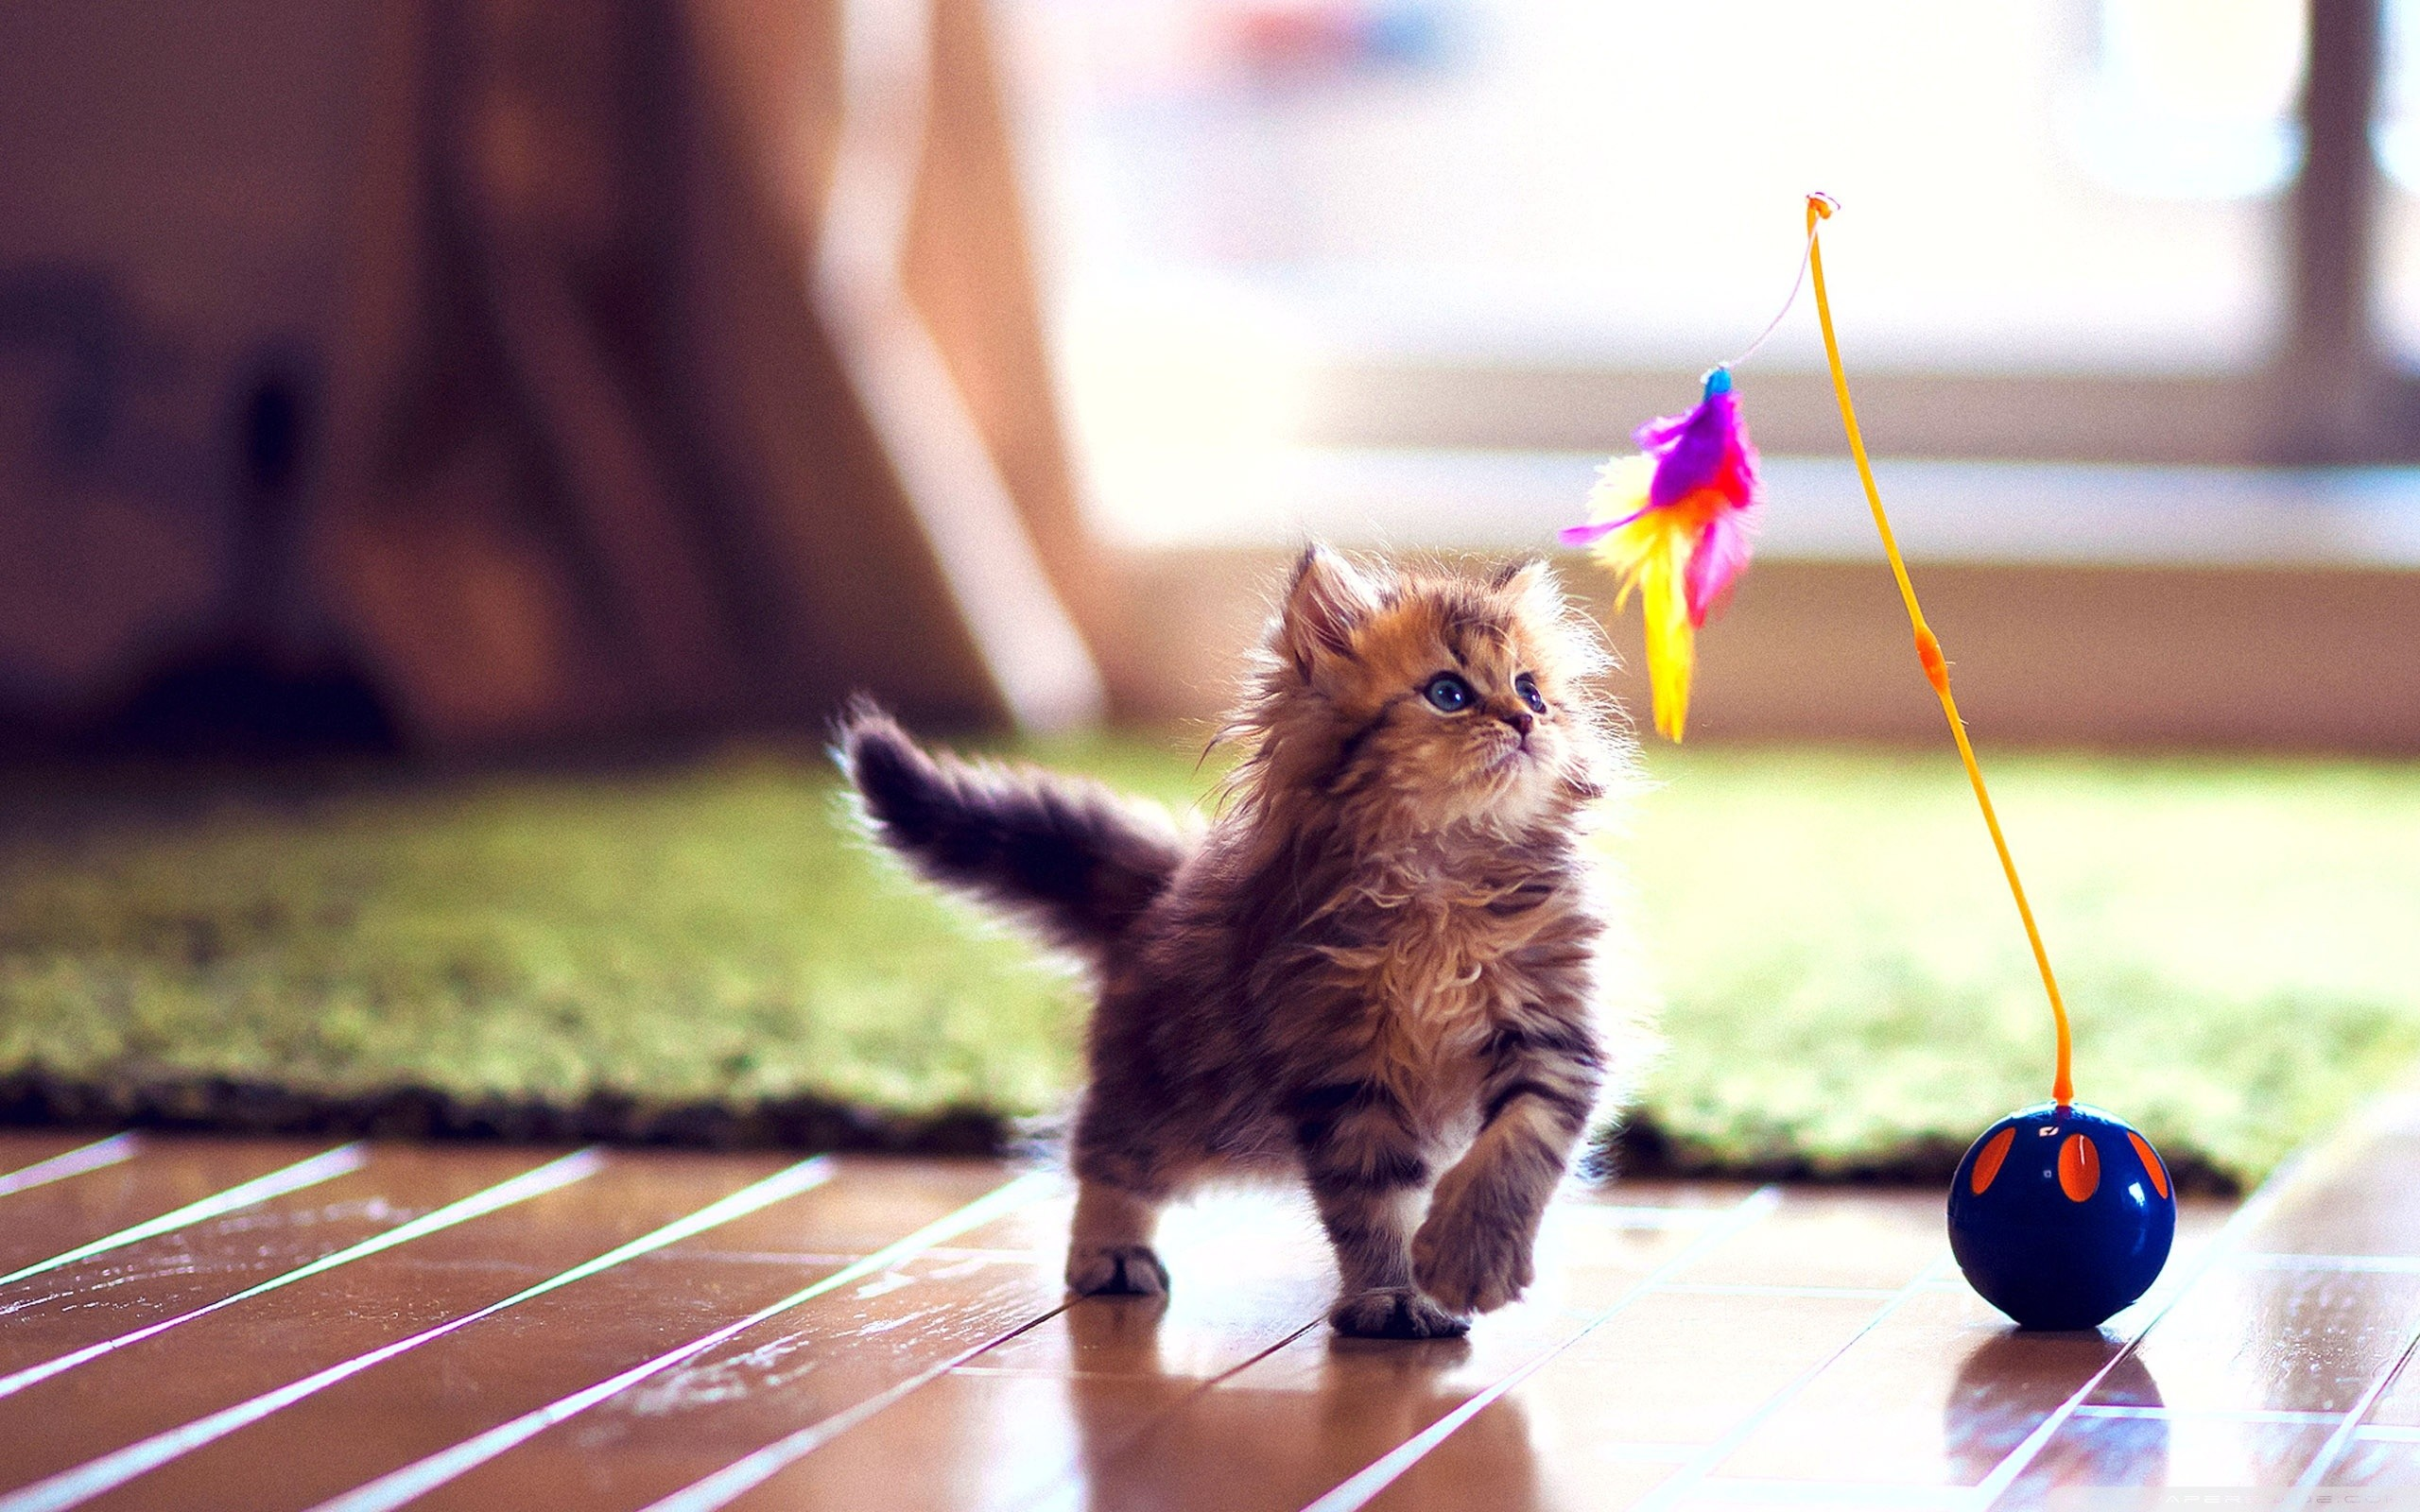 Cute Wallpapers Puppy Drawing Kittens Screensavers Wallpaper 48 Images